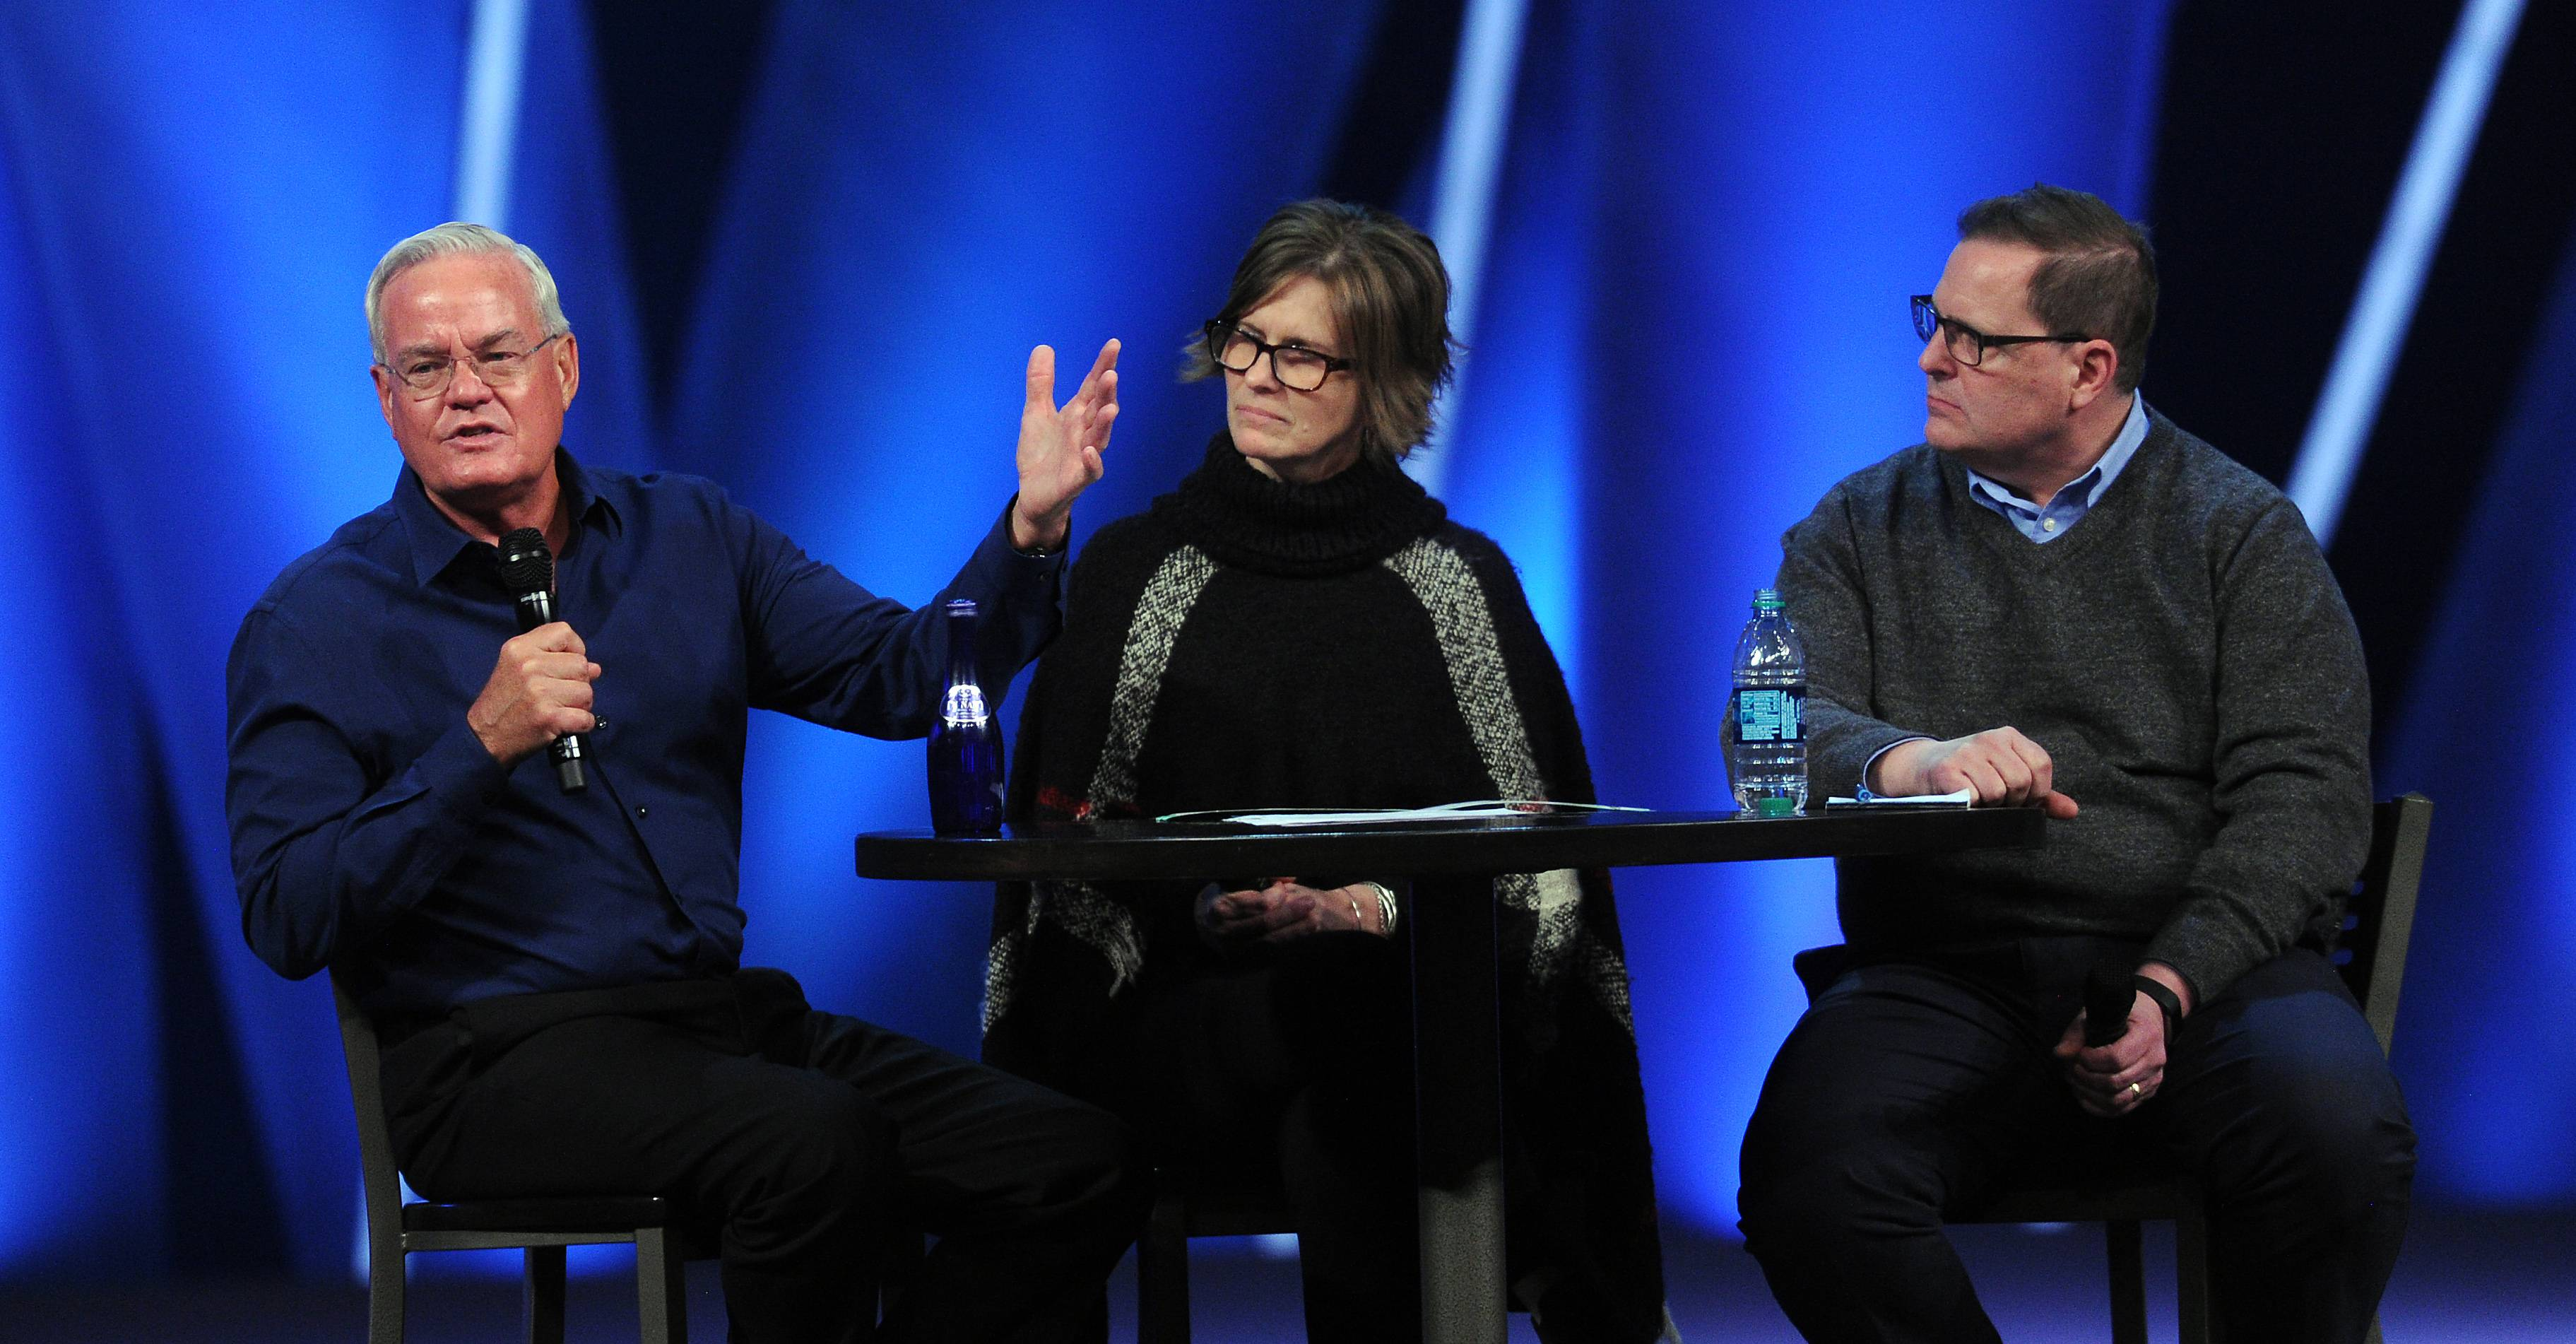 Willow Creek pastor Bill Hybels pleads his case to his congregation Friday about the misconduct allegations involving women as Pam Orr, chairman of the Willow Creek Elder Board, and Rob Campbell, Willow Chicago lead pastor, listen along with thousands of others in South Barrington.